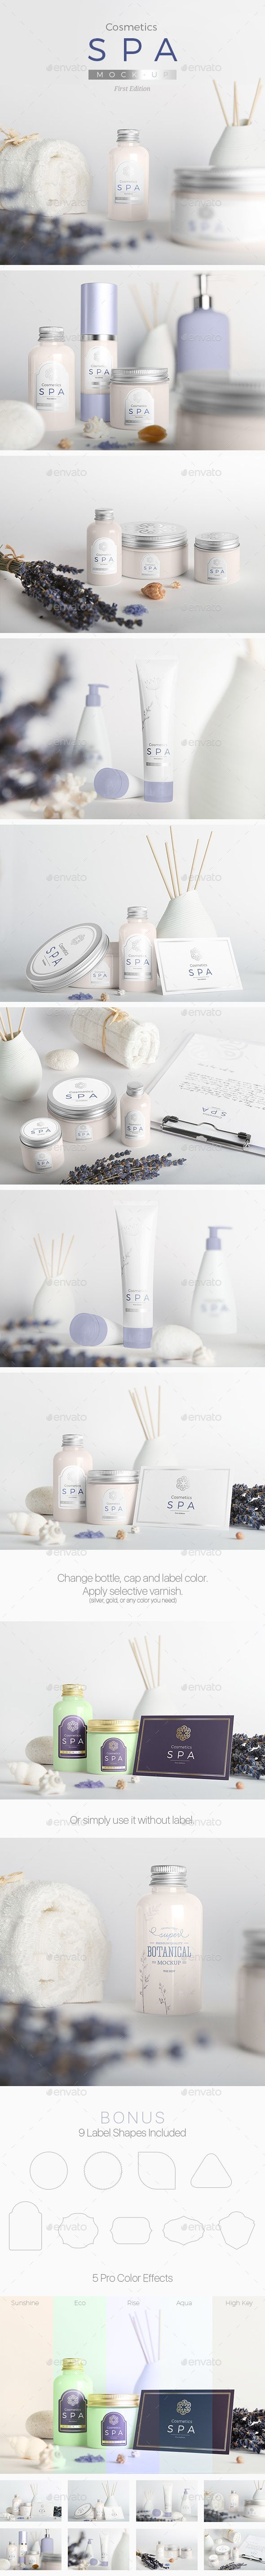 SPA Cosmetics Mock-Up. Download here: http://graphicriver.net/item/spa-cosmetics-mockup-v1/14697437?ref=ksioks